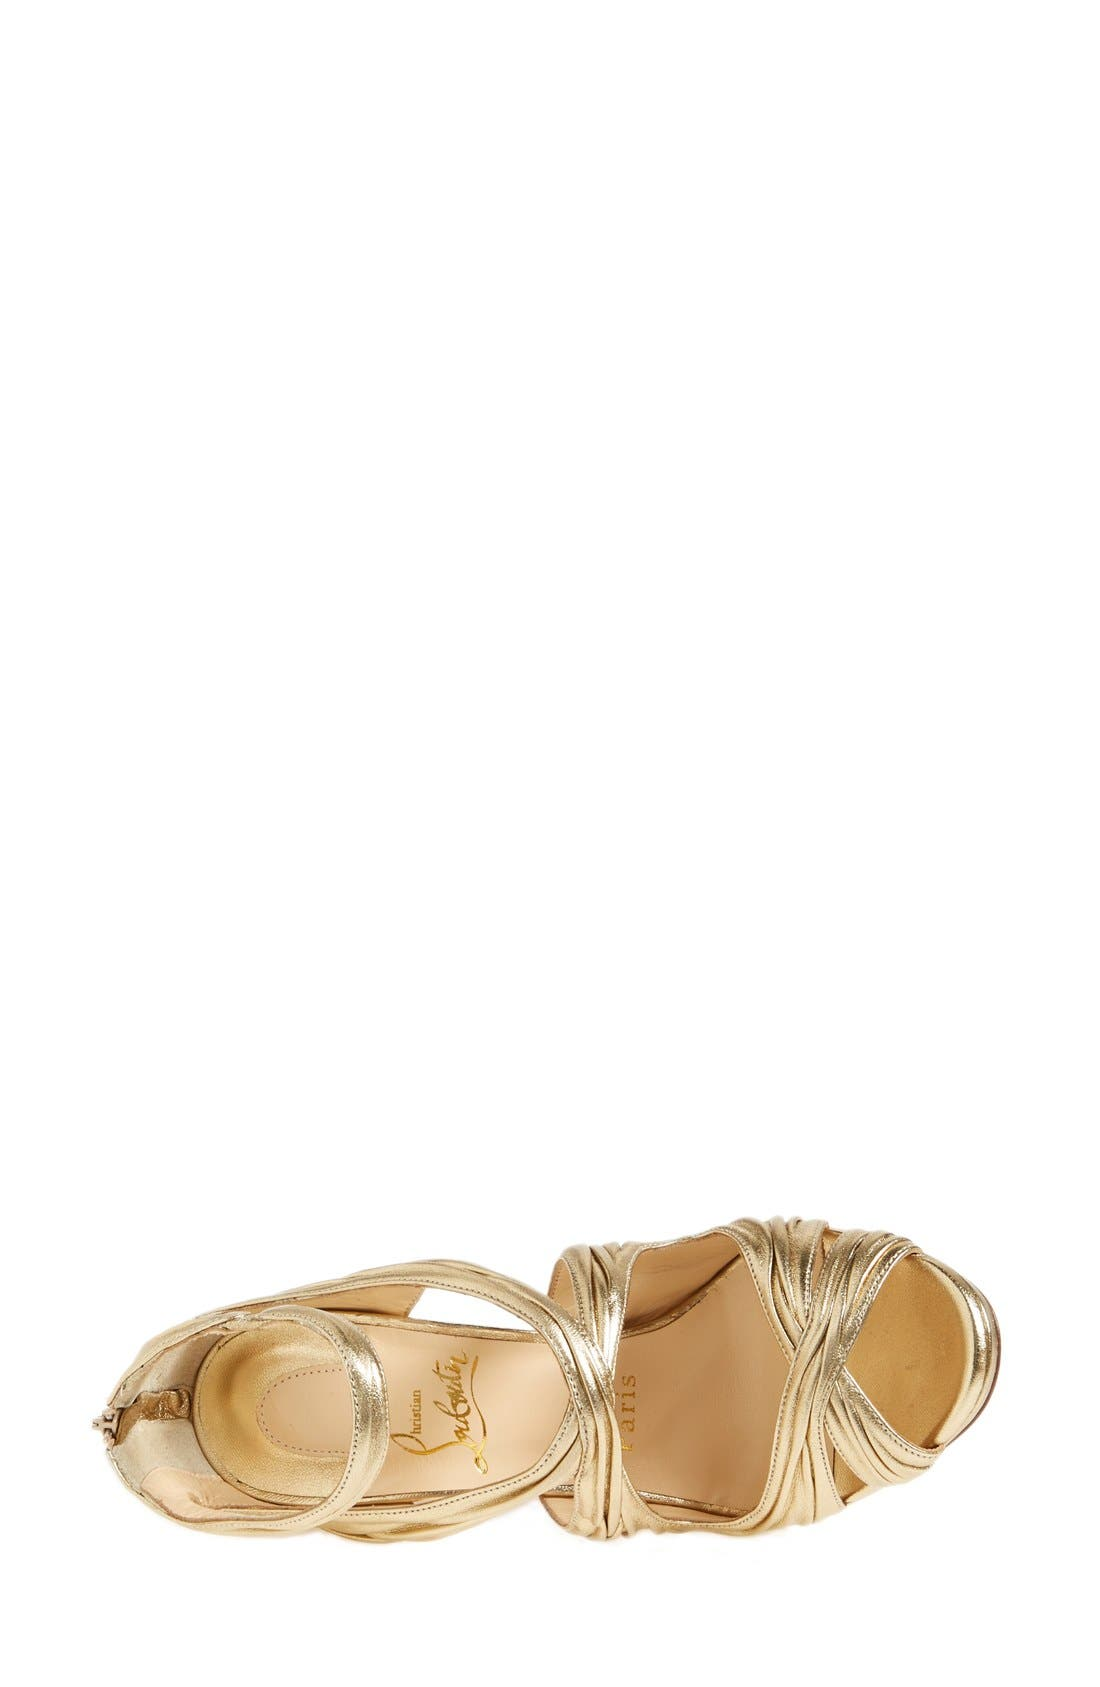 Alternate Image 3  - Christian Louboutin 'Kashou' Metallic Nappa Leather Sandal